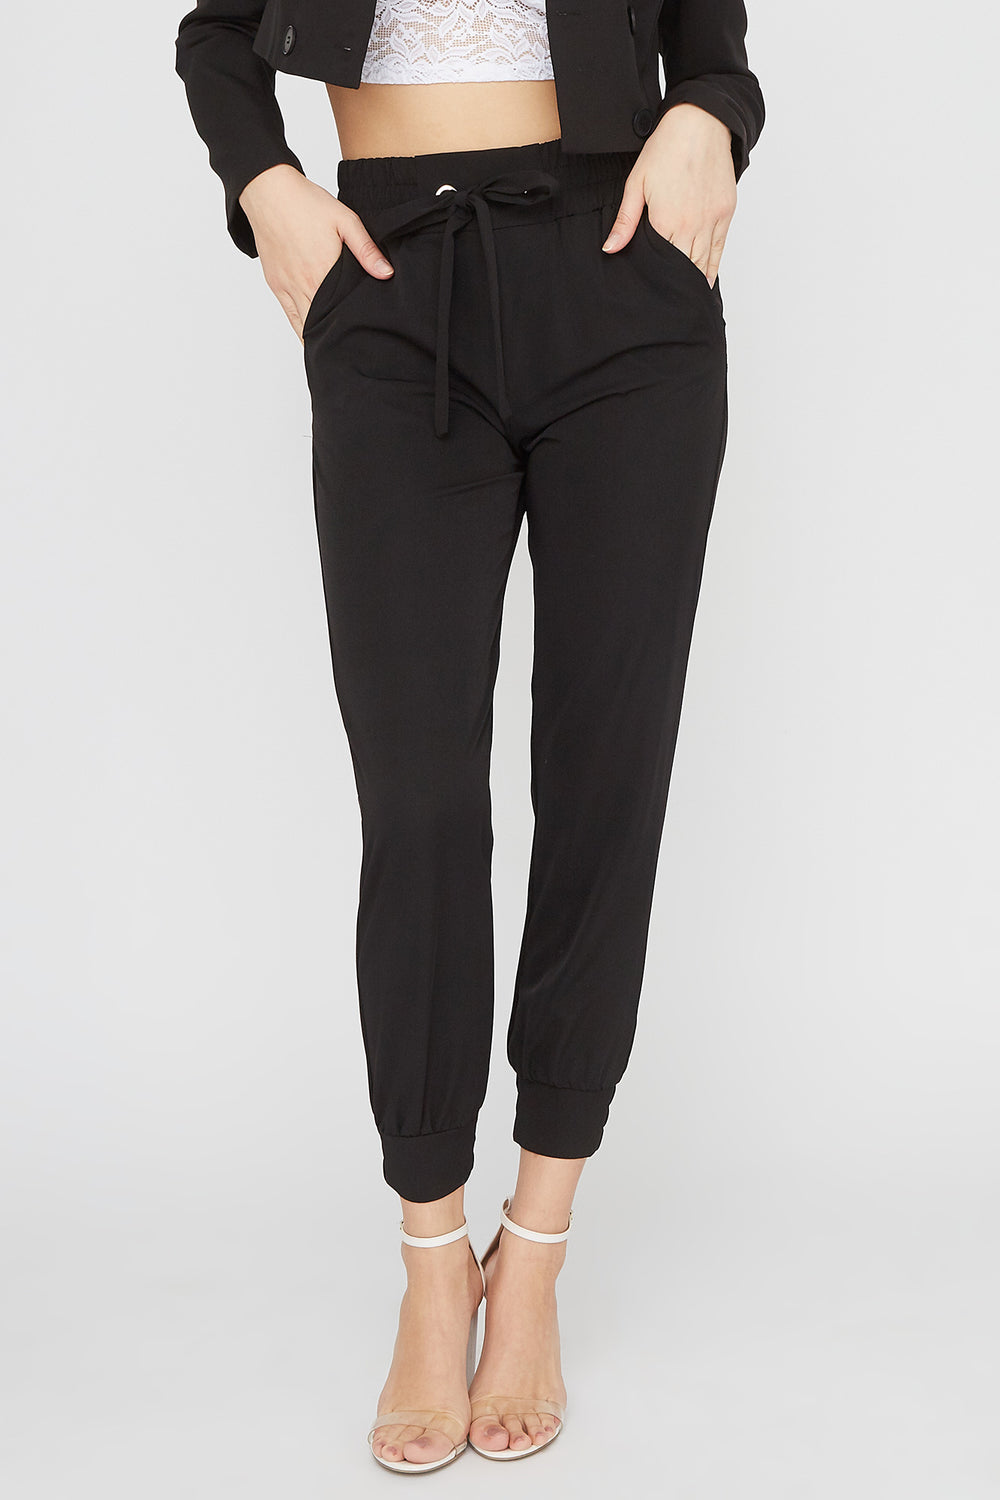 Pull-On Drawstring Jogger Black